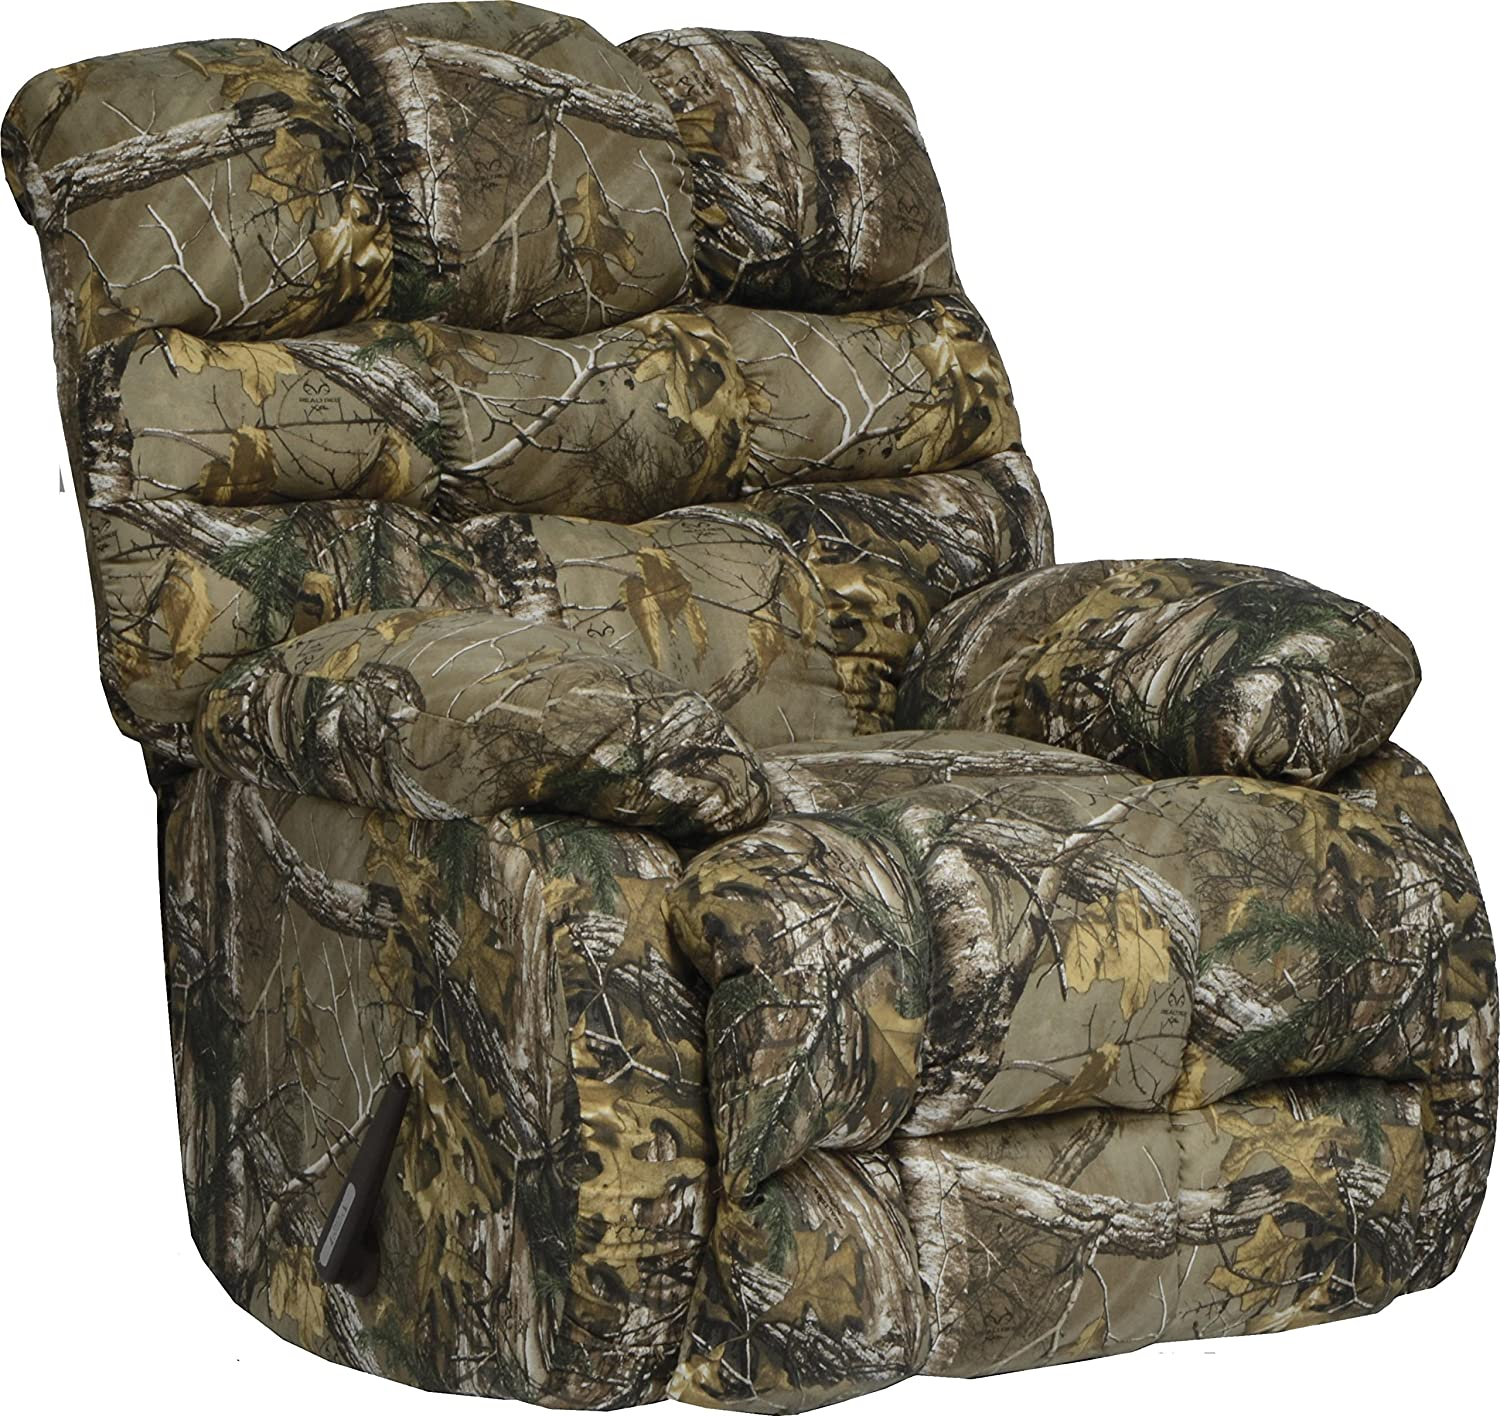 Amazon.com Duck Dynasty Flat Rock Chaise Rocker Recliner - Realtree Xtra Kitchen u0026 Dining  sc 1 st  Amazon.com : duck commander recliner - islam-shia.org